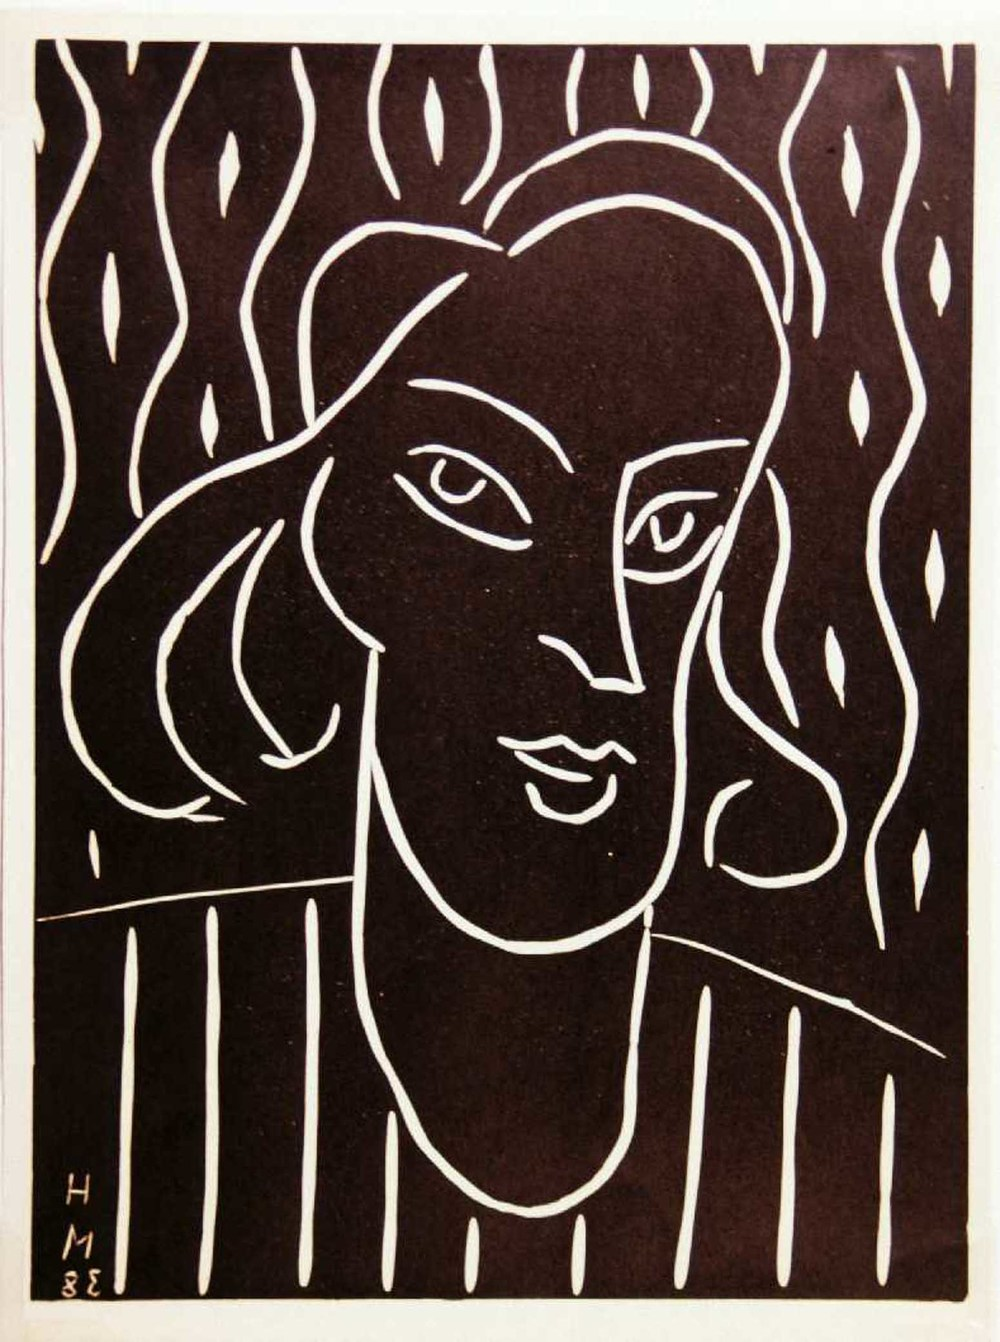 Henri Matisse, Head of a Woman, n.d., Linocut, Gift of the Estate of Earleen G. Field, Polk Museum of Art Permanent Collection 2001.11.10